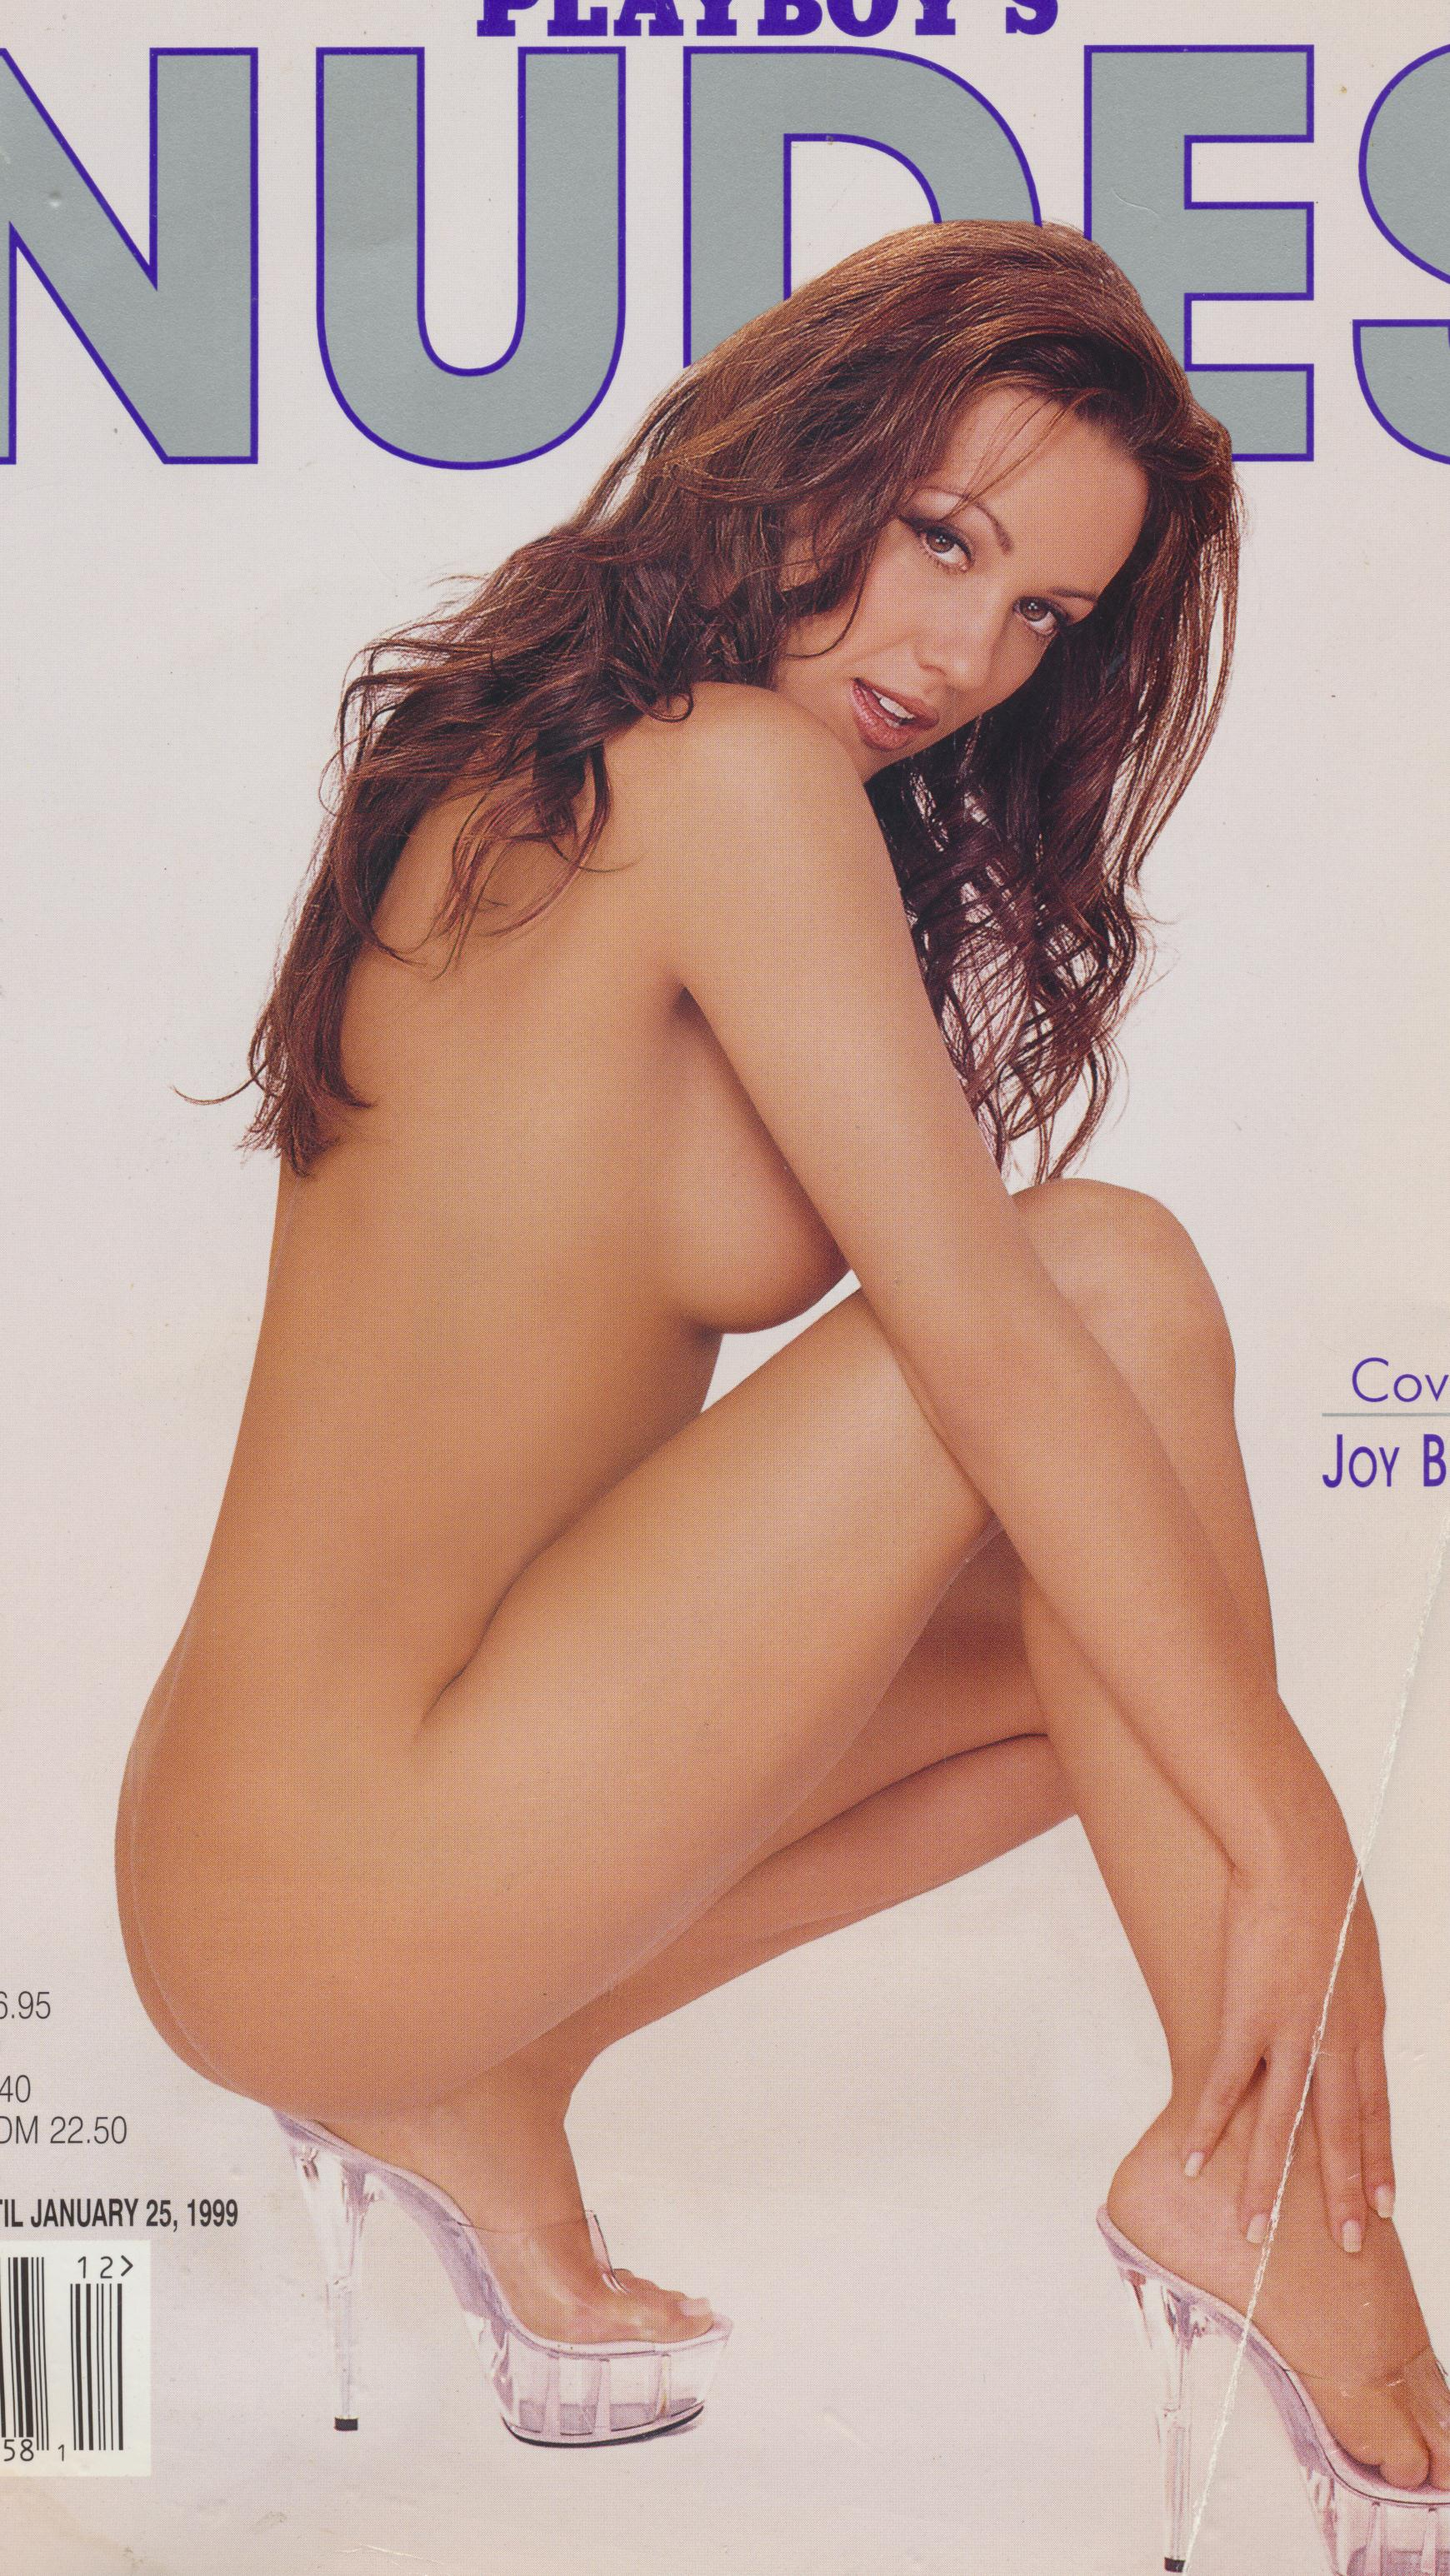 Playboy's Nudes Magazine Dec.1998 Joy Behrman Cover